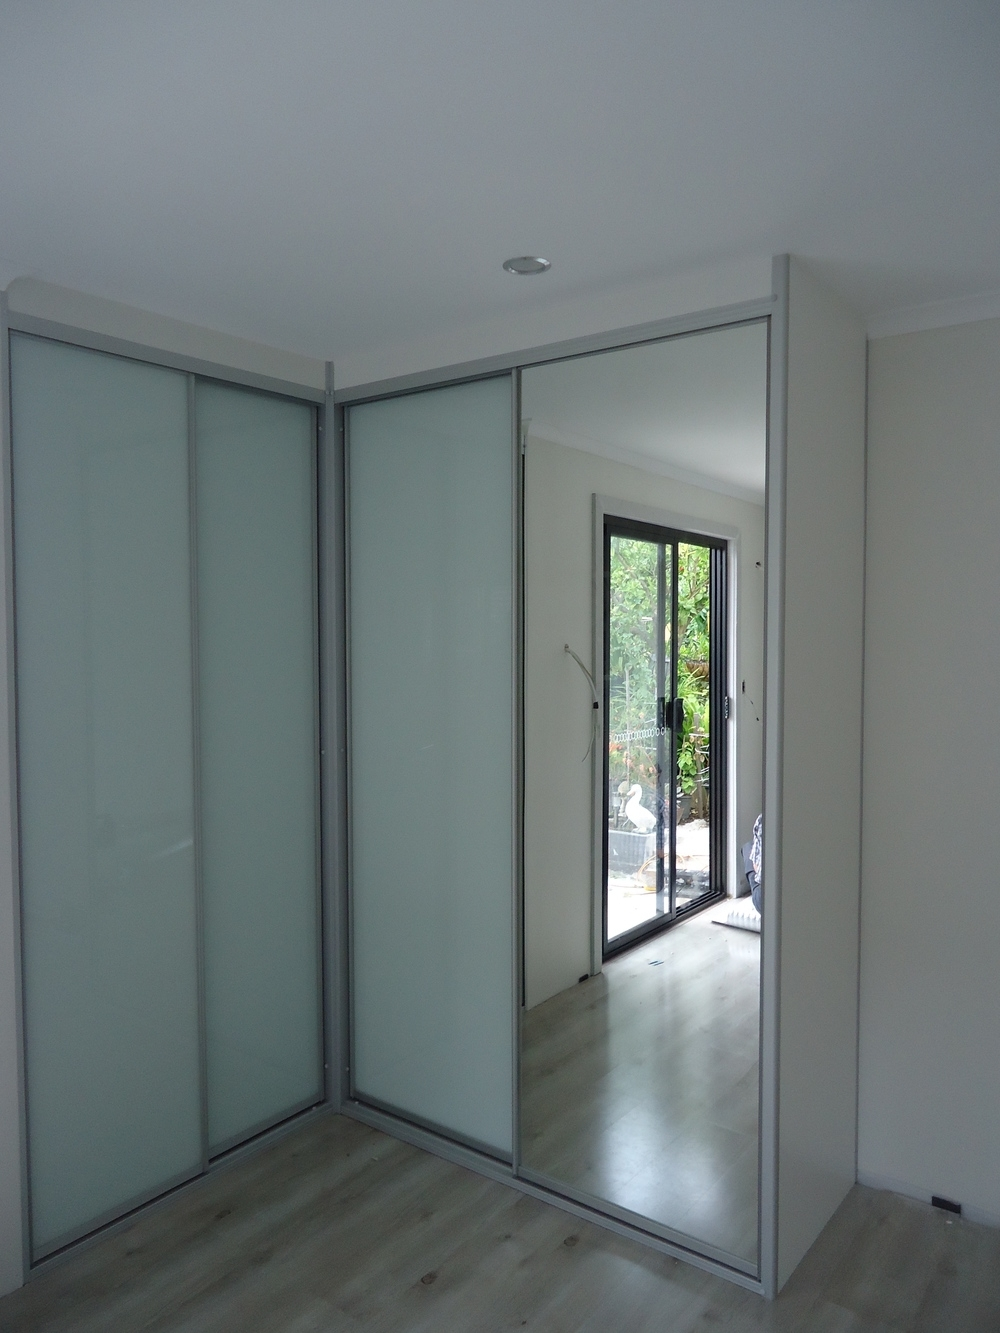 Contemporary Sliding Wardrobes — Quality Kitchens And Wardrobes With Best And Newest Corner Mirrored Wardrobes (View 6 of 15)